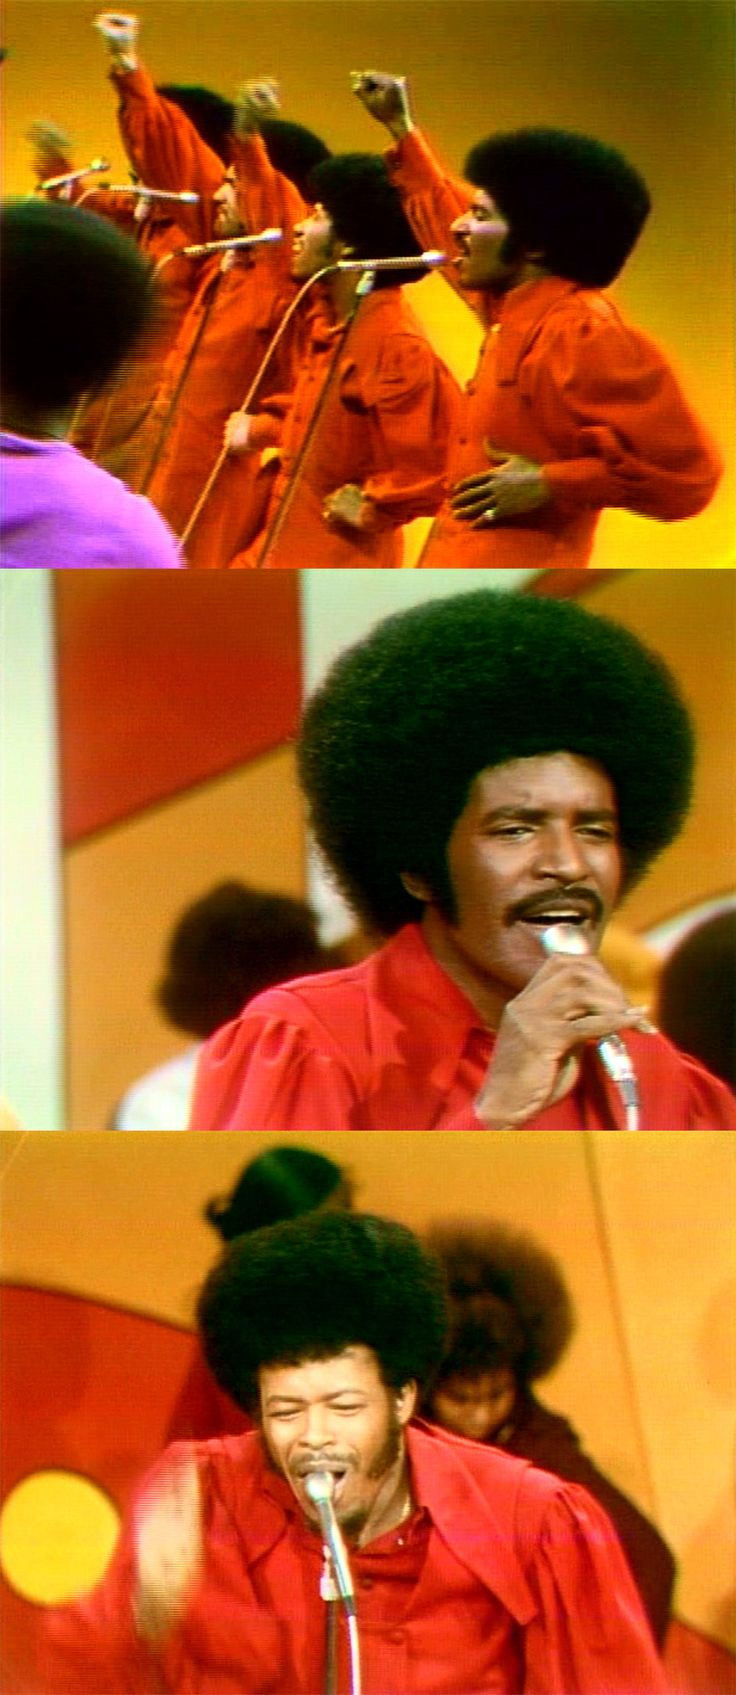 """The Chi-Lites perform """"Give More Power To The People"""" on Soul Train, December 18, 1971"""